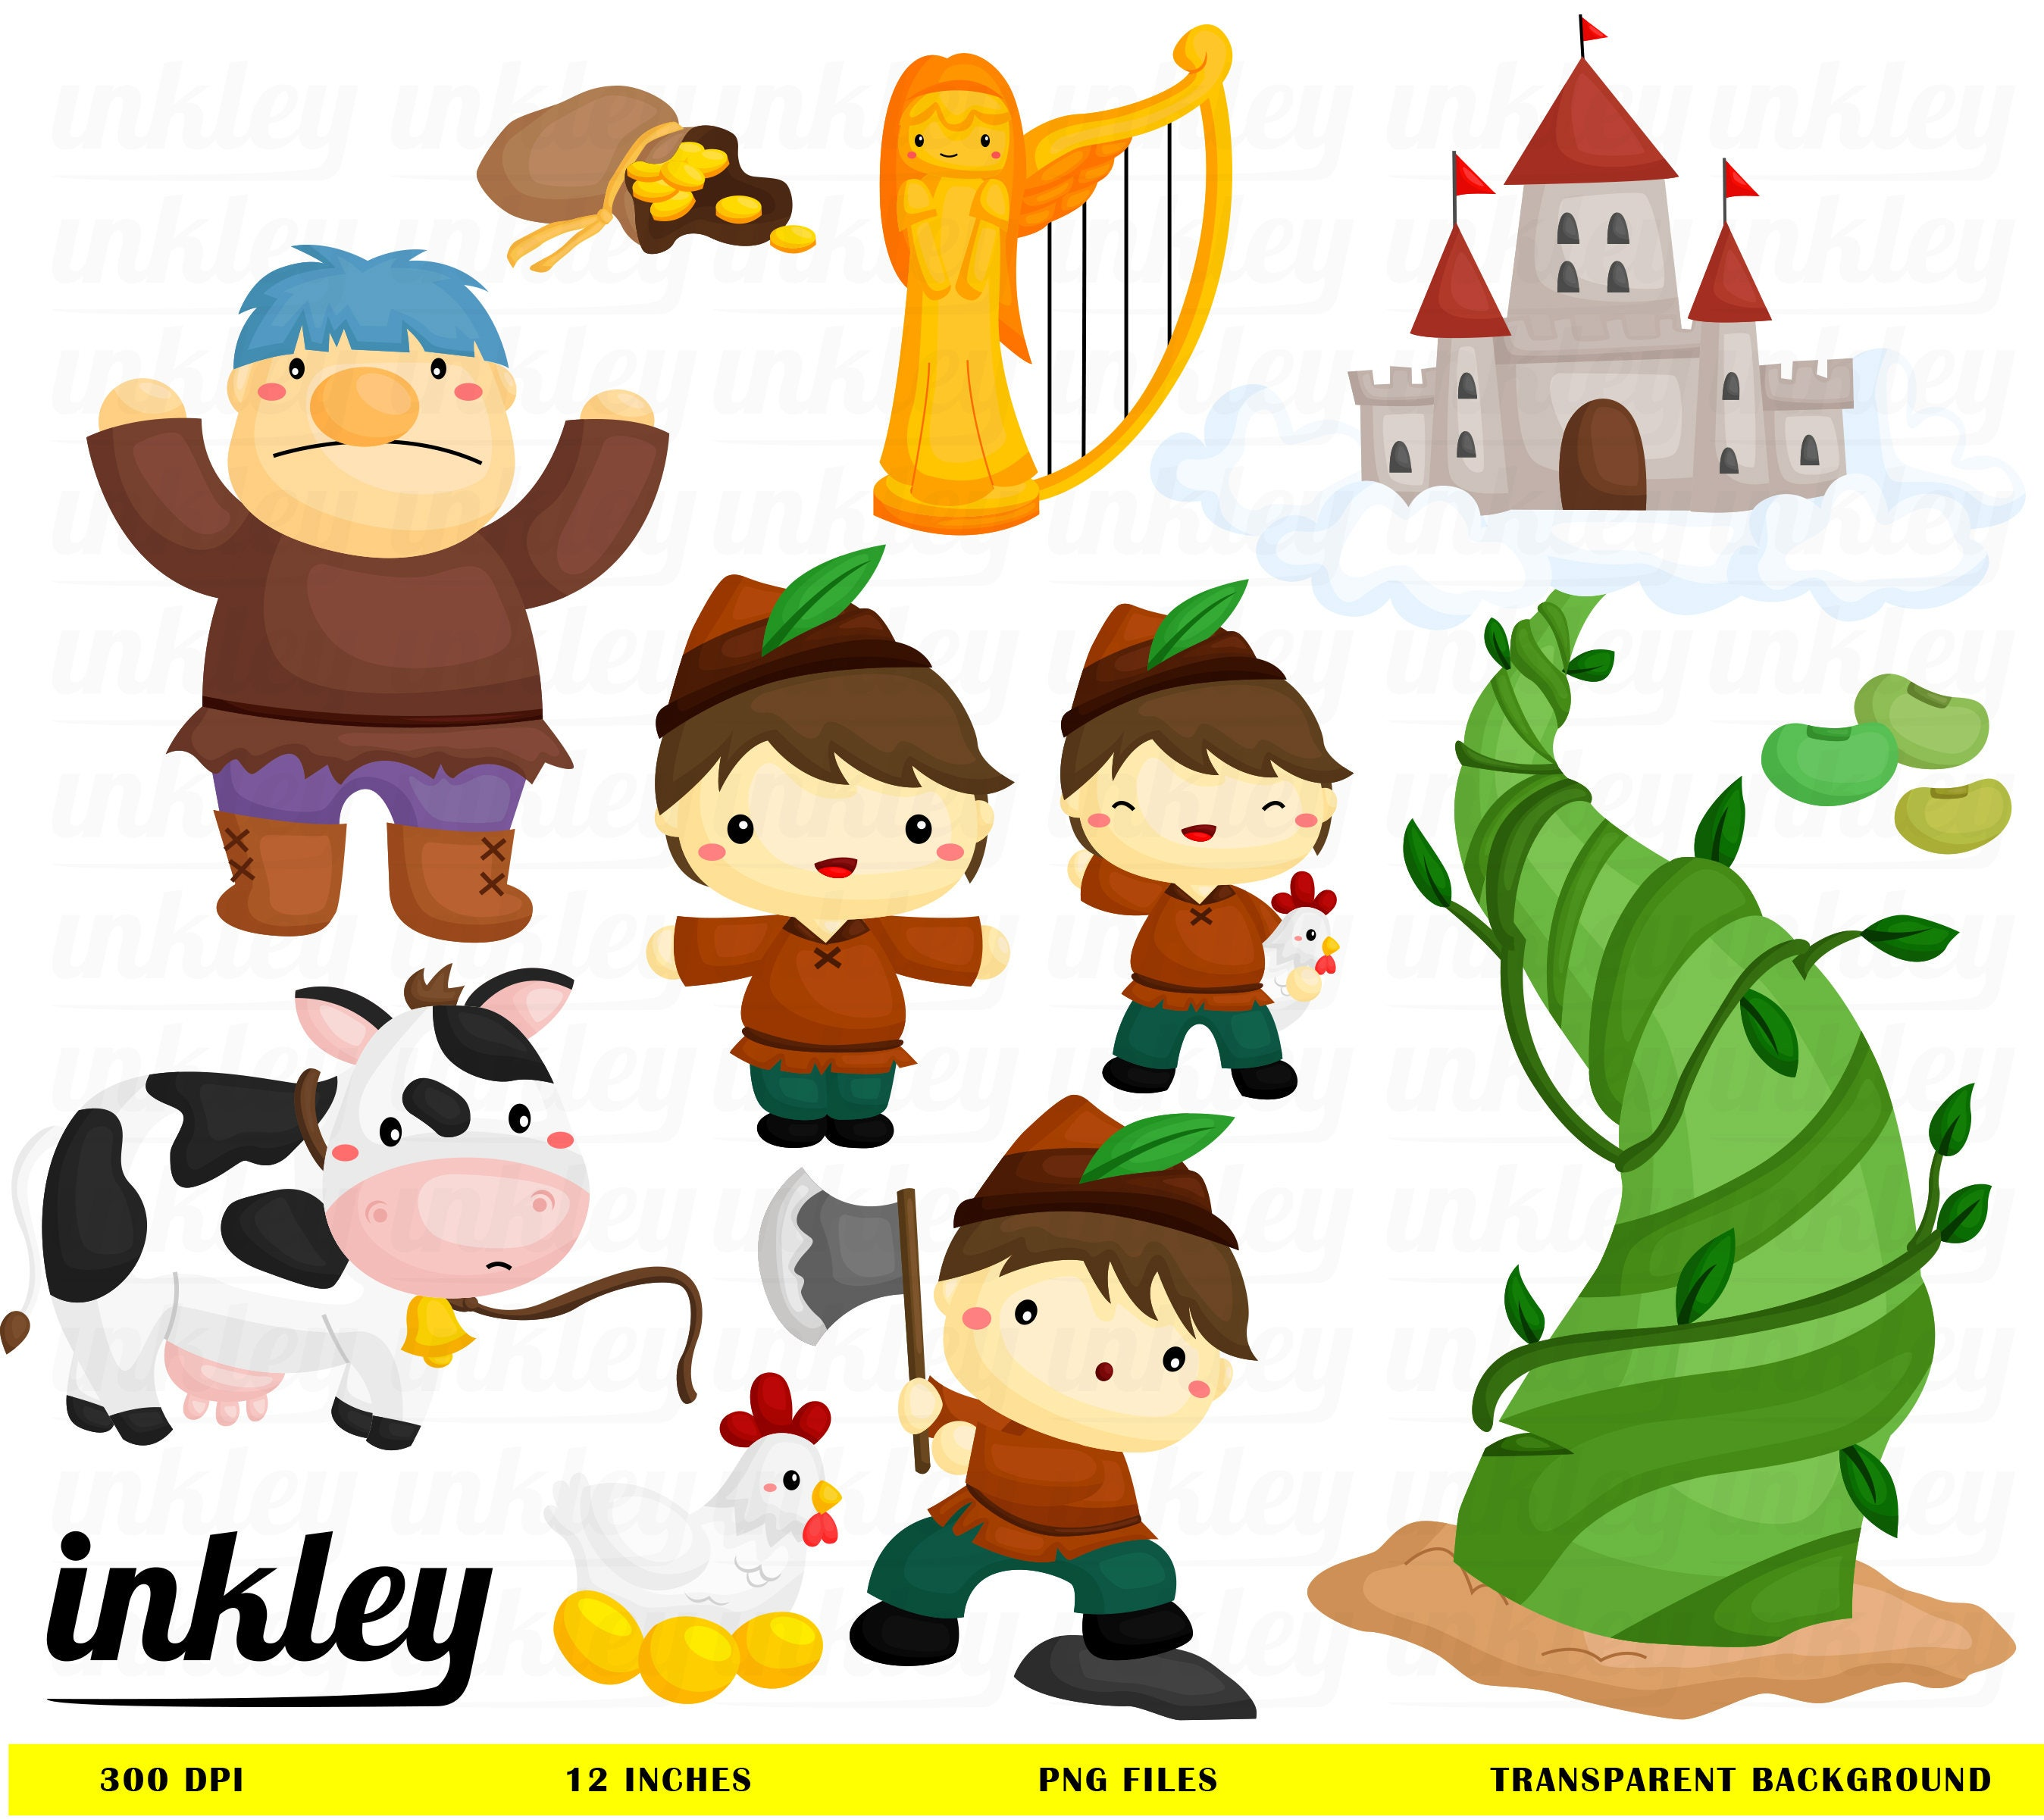 jack and the beanstalk clipart jack and the beanstalk clip rh etsy com jack and the beanstalk clipart free jack and the beanstalk clipart images